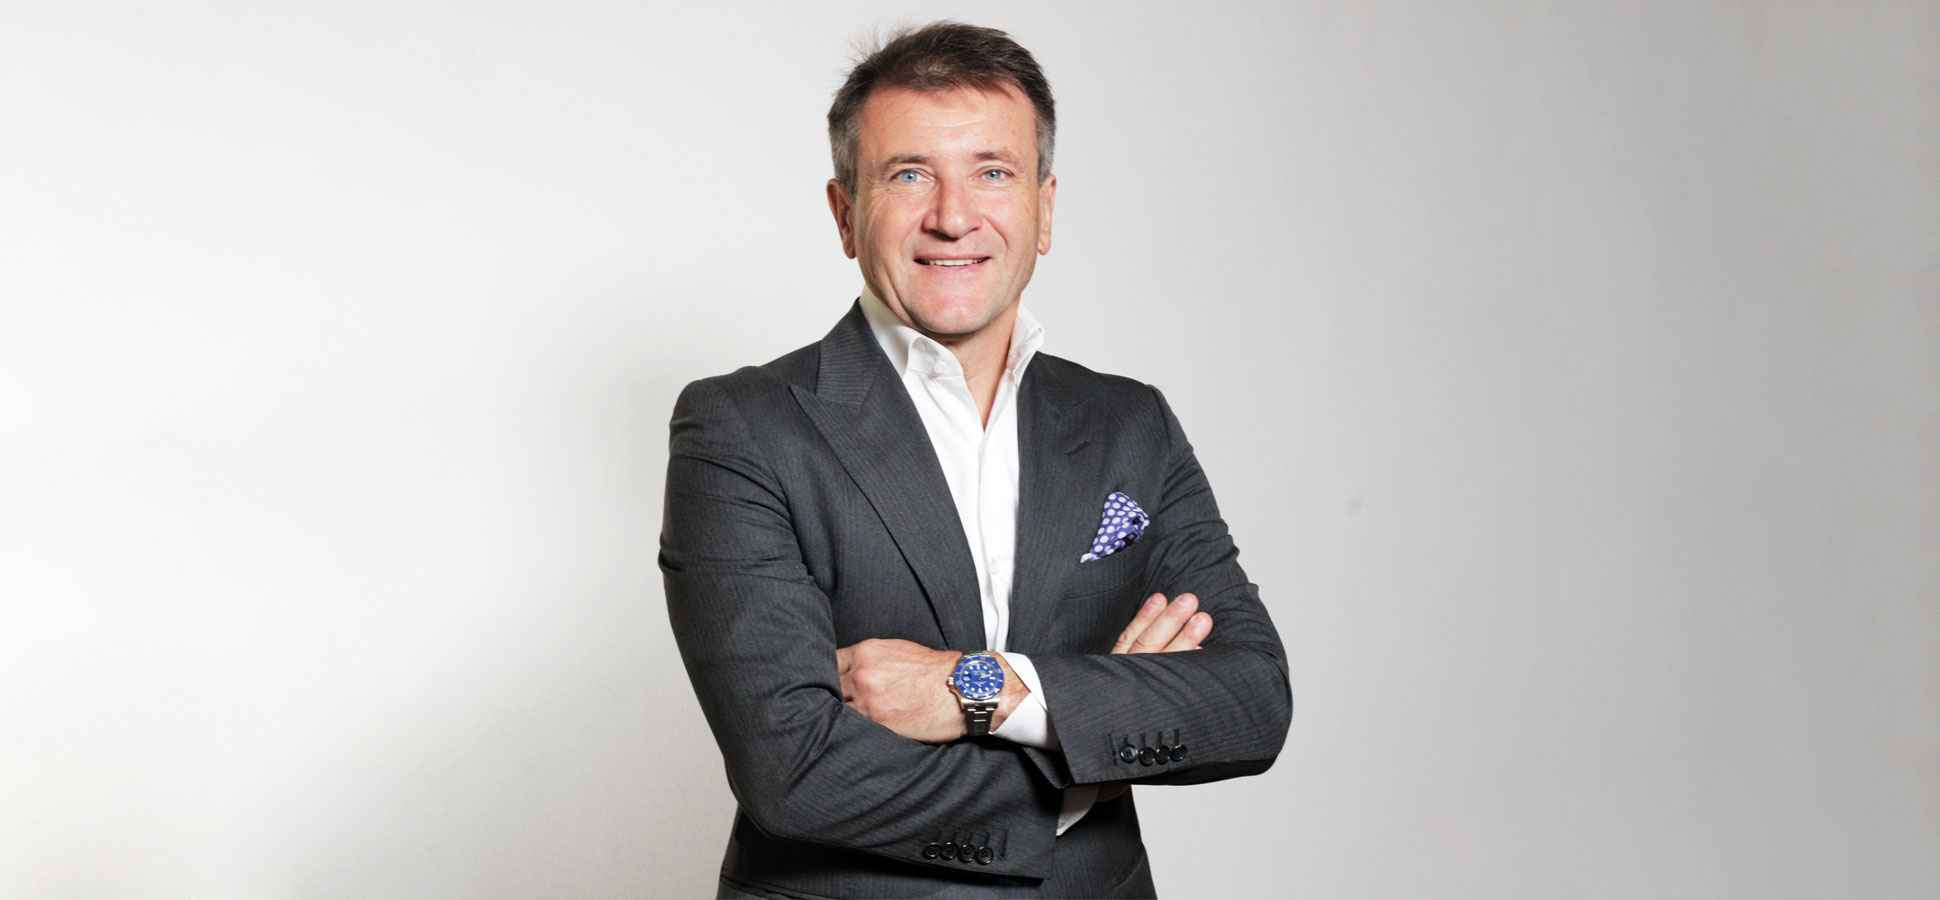 Abc Salary And Investments Key To Robert Herjavec 200